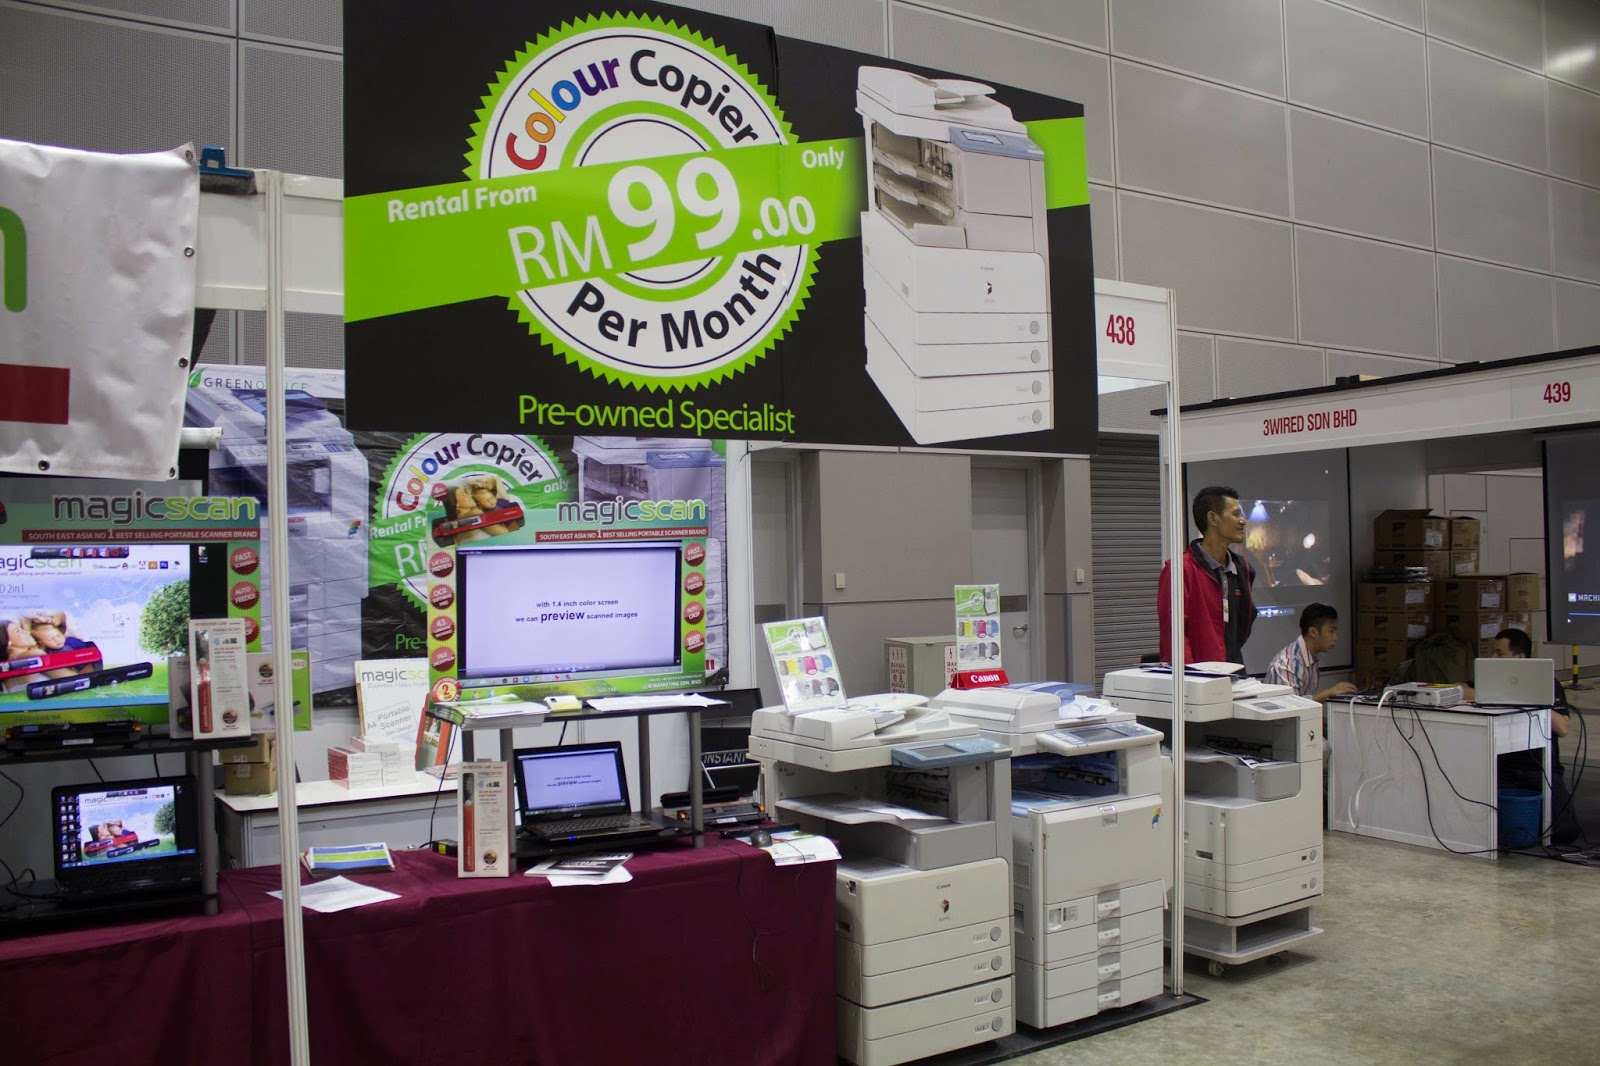 Coverage of PIKOM PC Fair 2014 @ Kuala Lumpur Convention Center 368